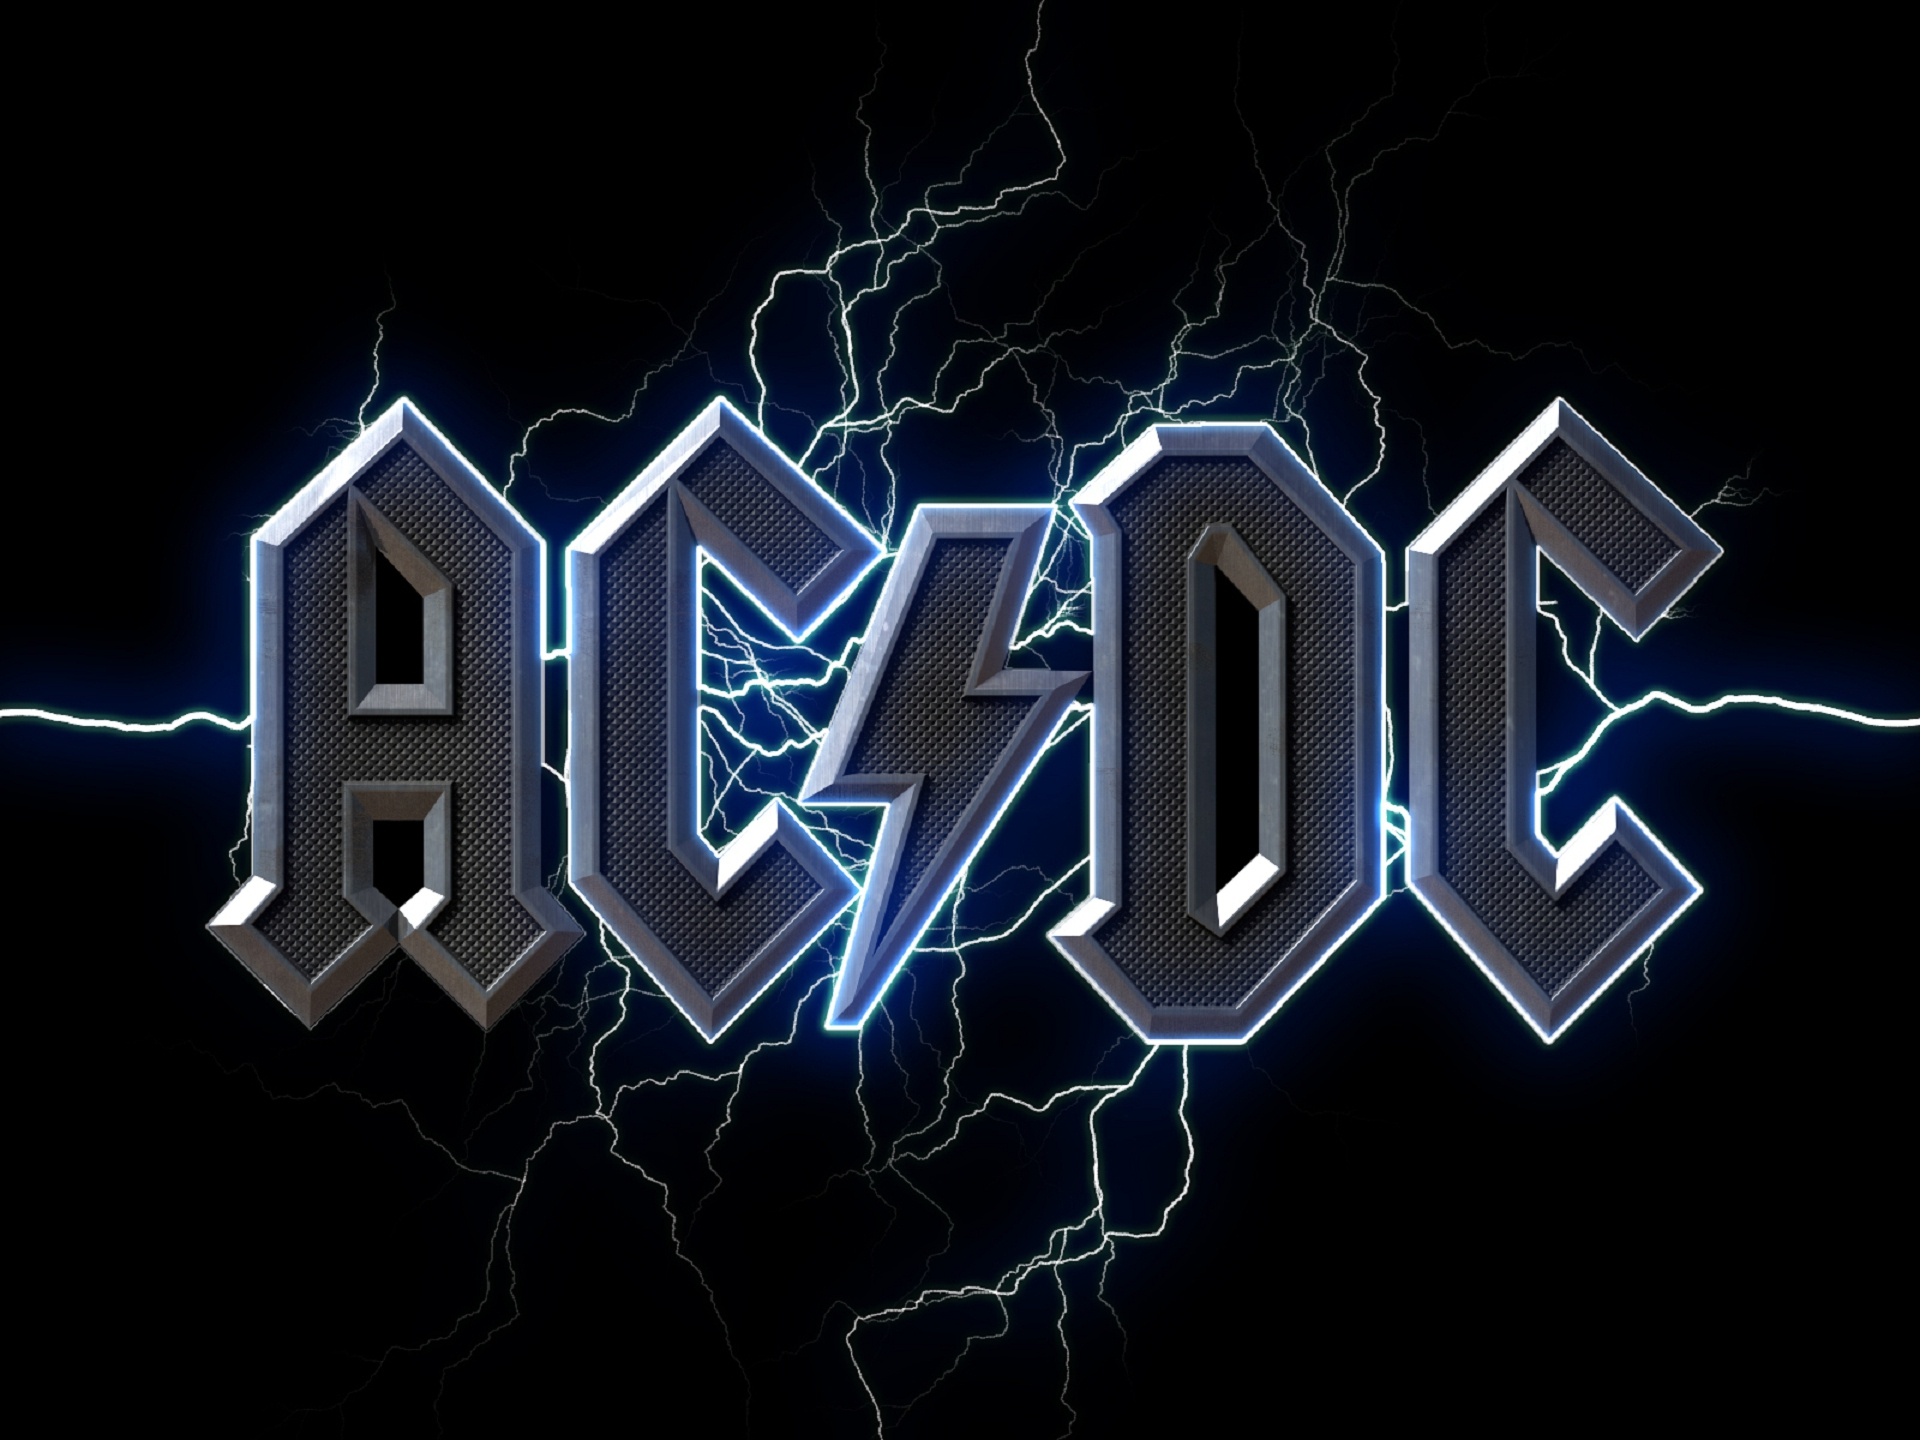 Acdc Widescreen